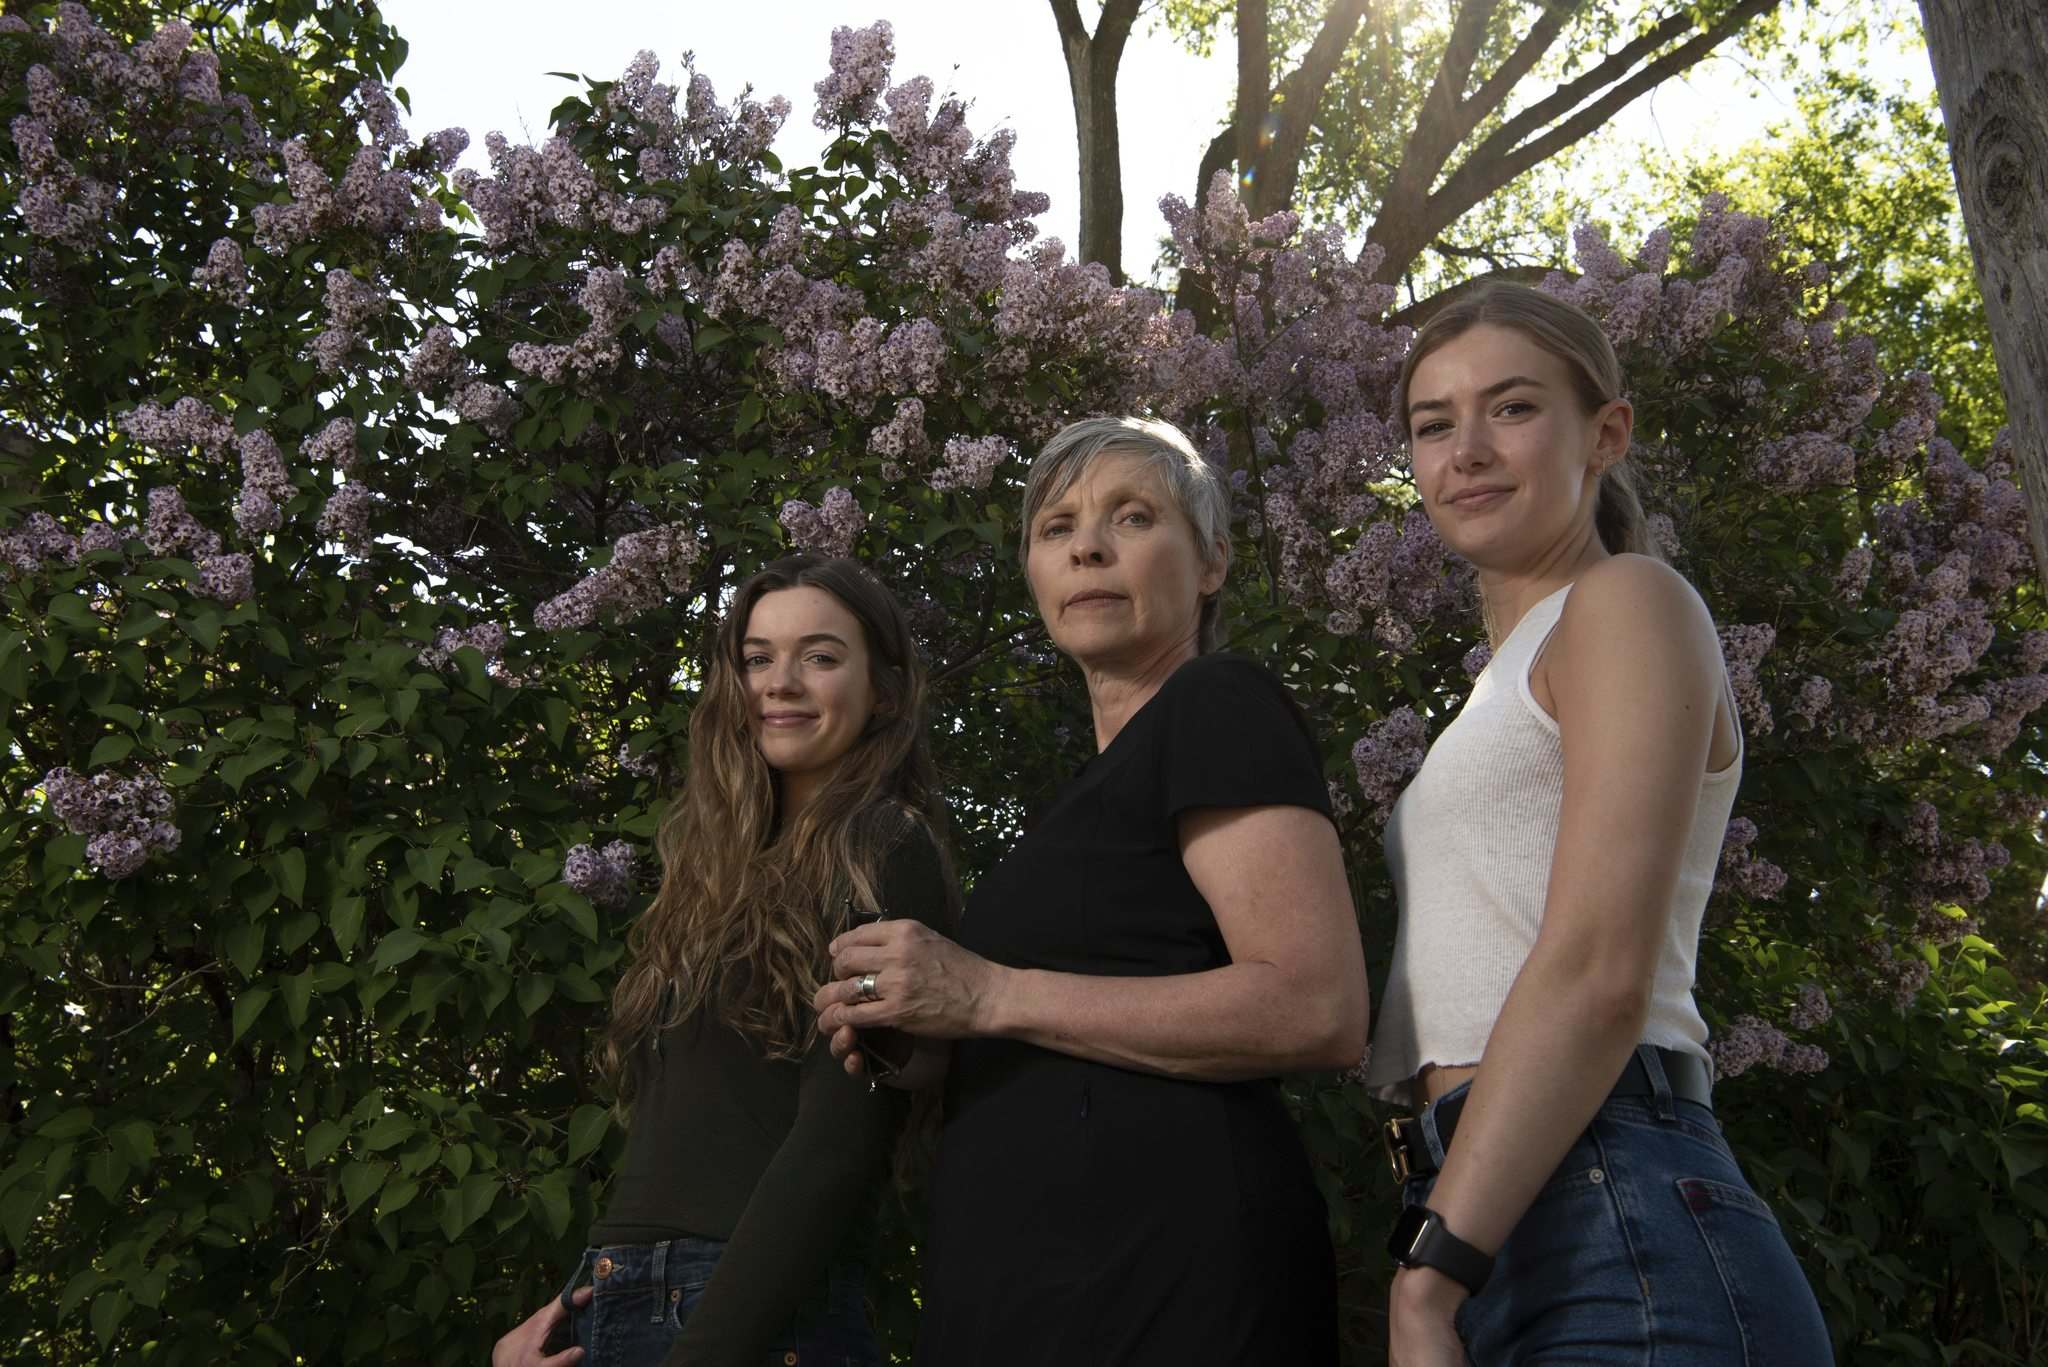 Spooky crew: Local actors Megan Best (from left), Marina Stephenson Kerr and Jade Michael, stars of the film Seance, outside the Wellington Crescent home that was used as a location the movie. (Alex Lupul / Winnipeg Free Press)